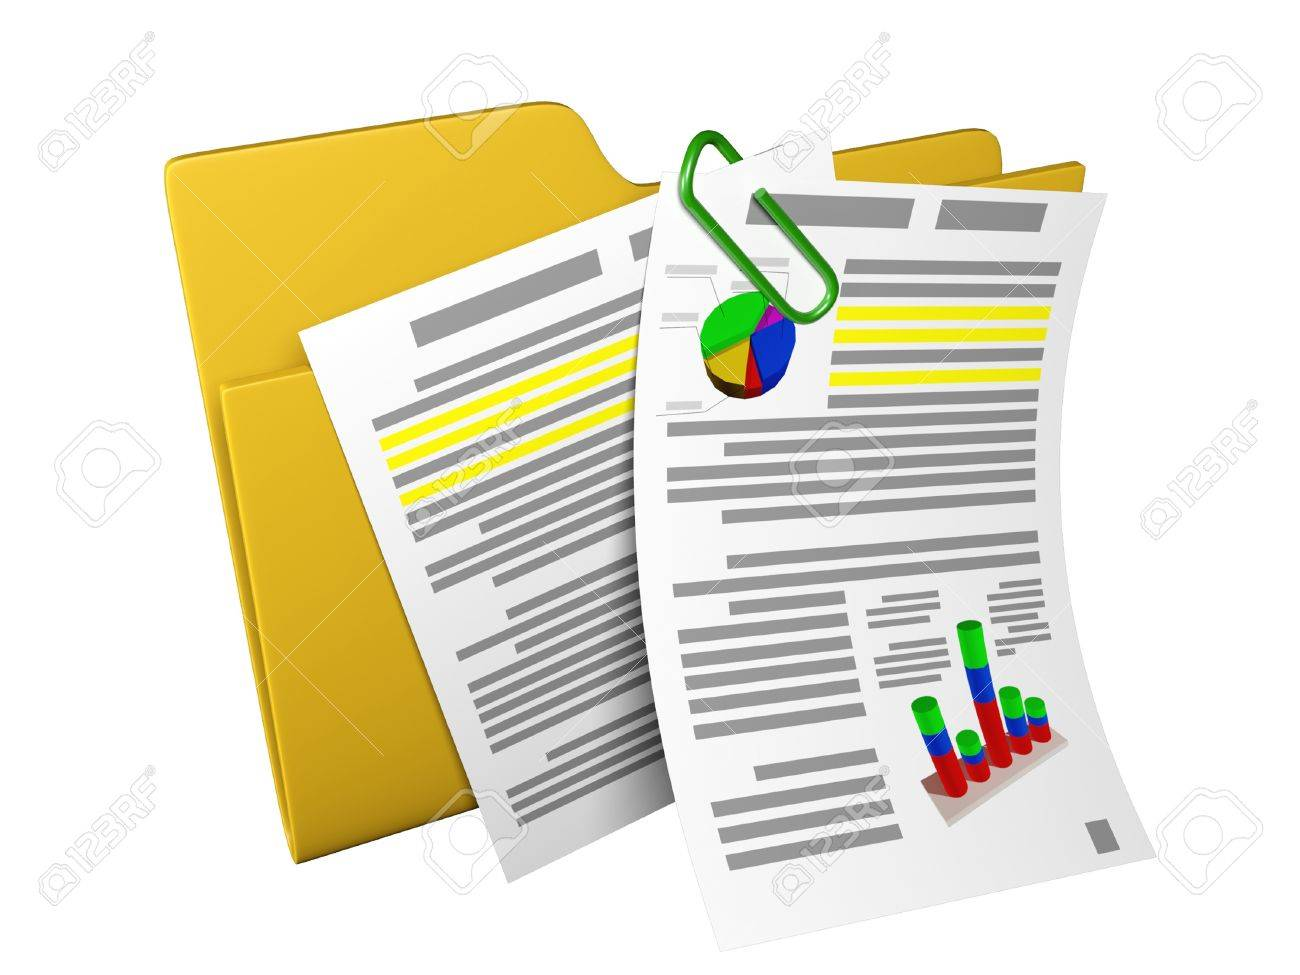 3d an illustration: a yellow folder with documents and schedules Stock Illustration - 13925147